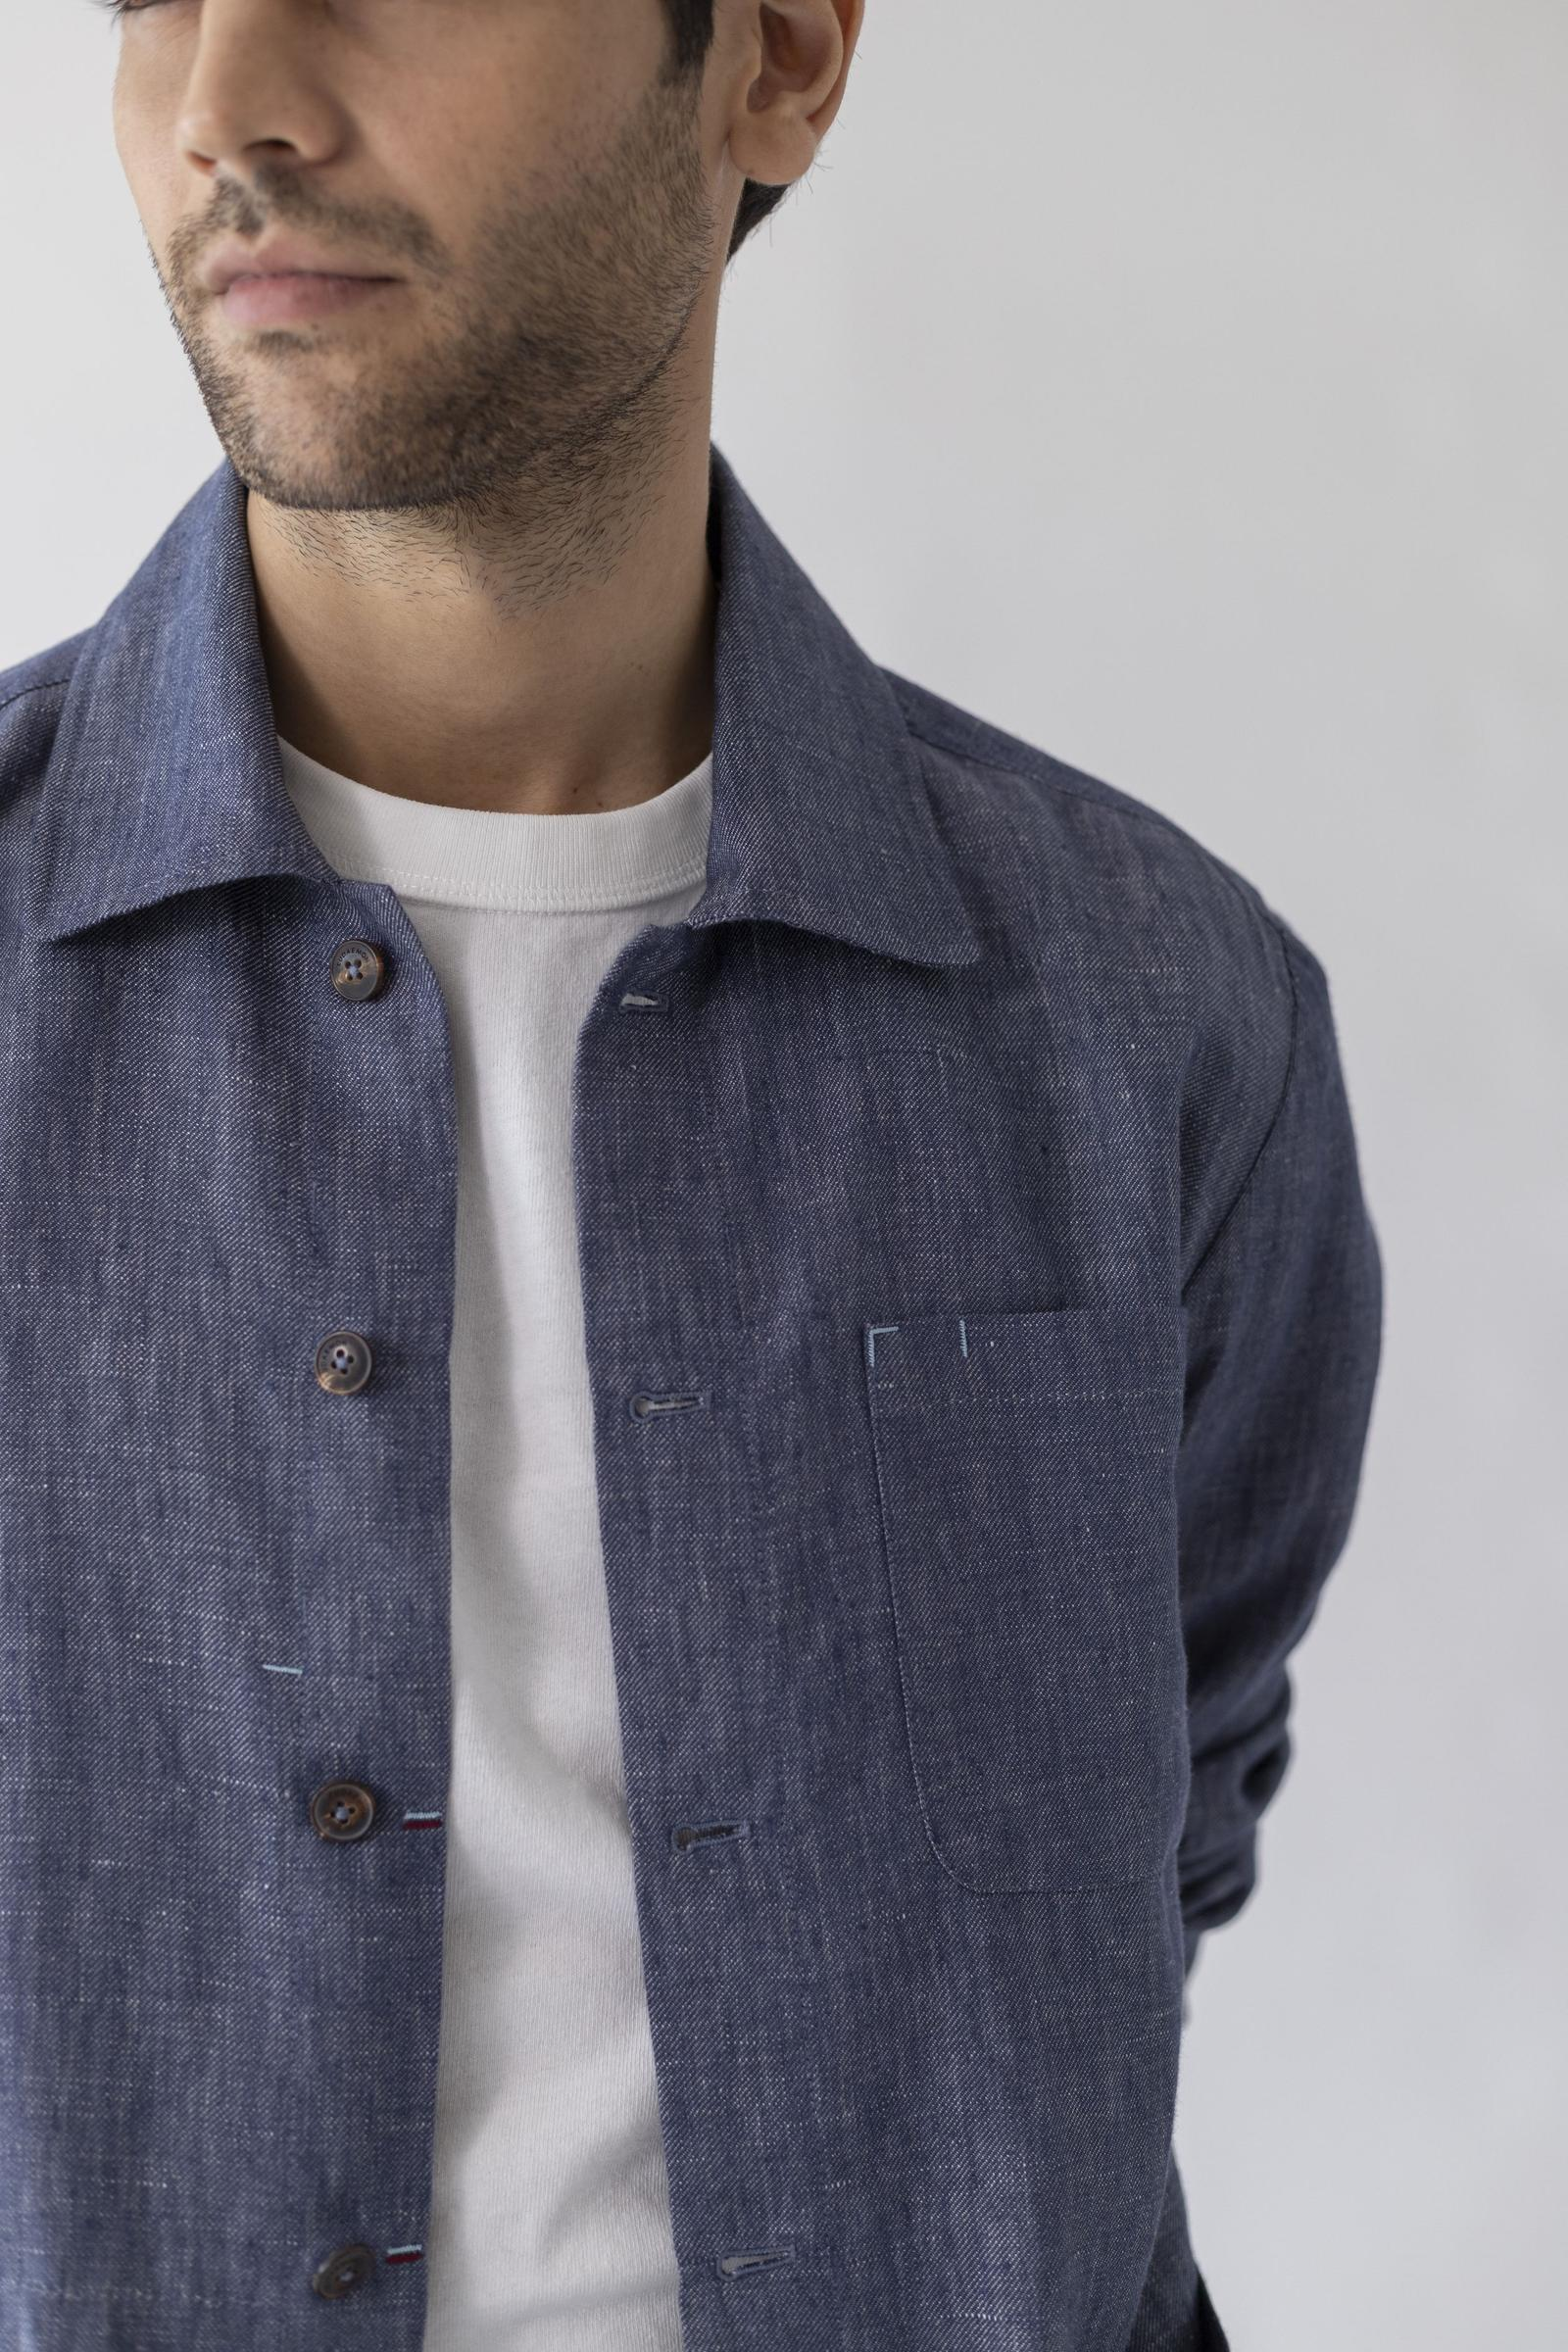 The All Day Masters Jacket - Melange Linen